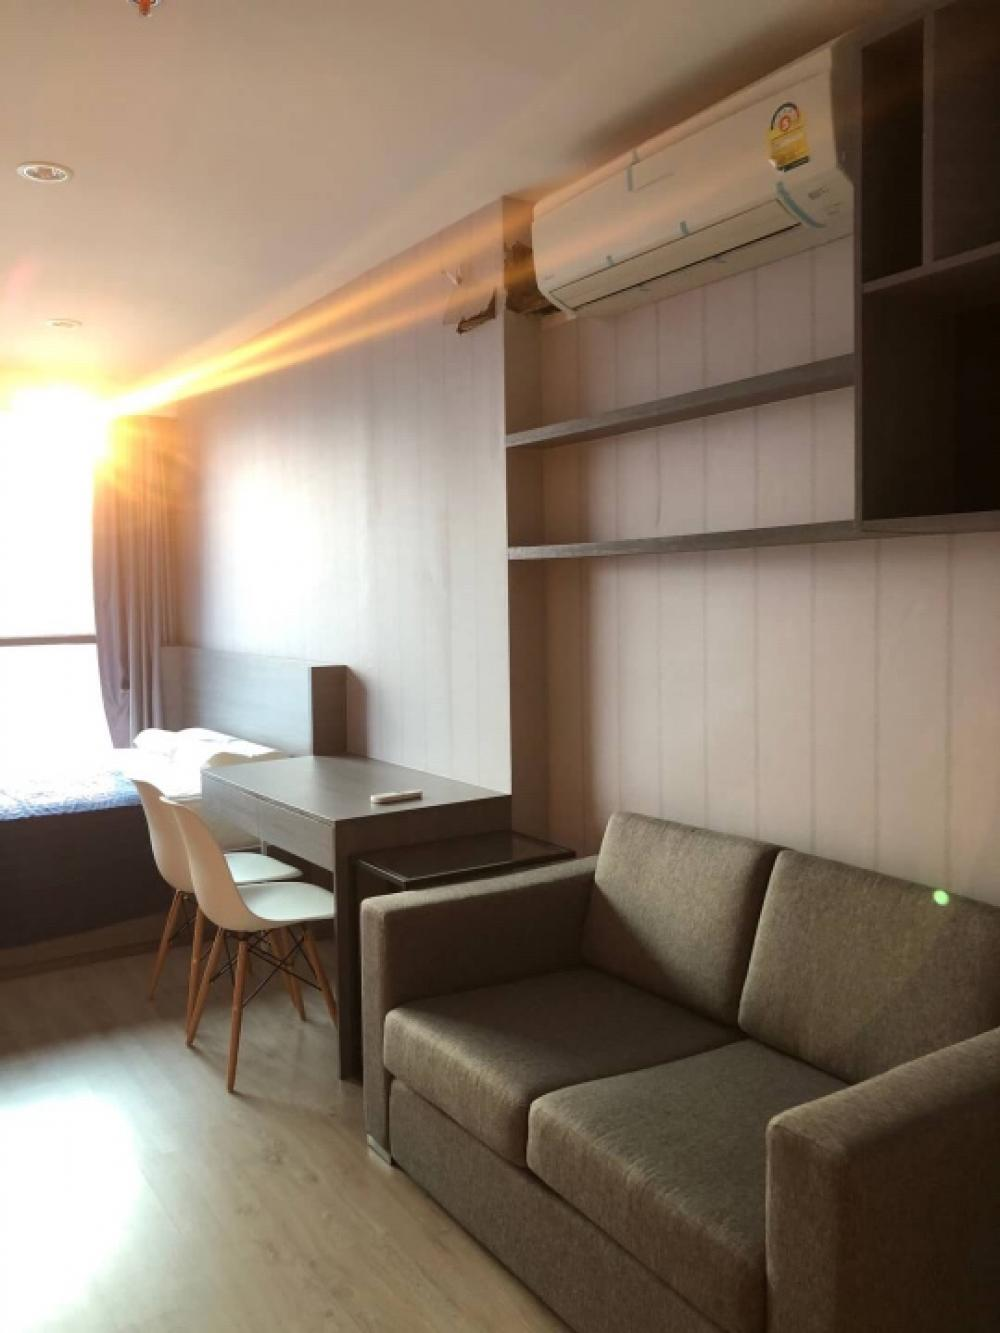 For SaleCondoSiam Paragon ,Chulalongkorn,Samyan : Quick sale 🔥 best price before being attached to a 1 bedroom with a pool view 5.60